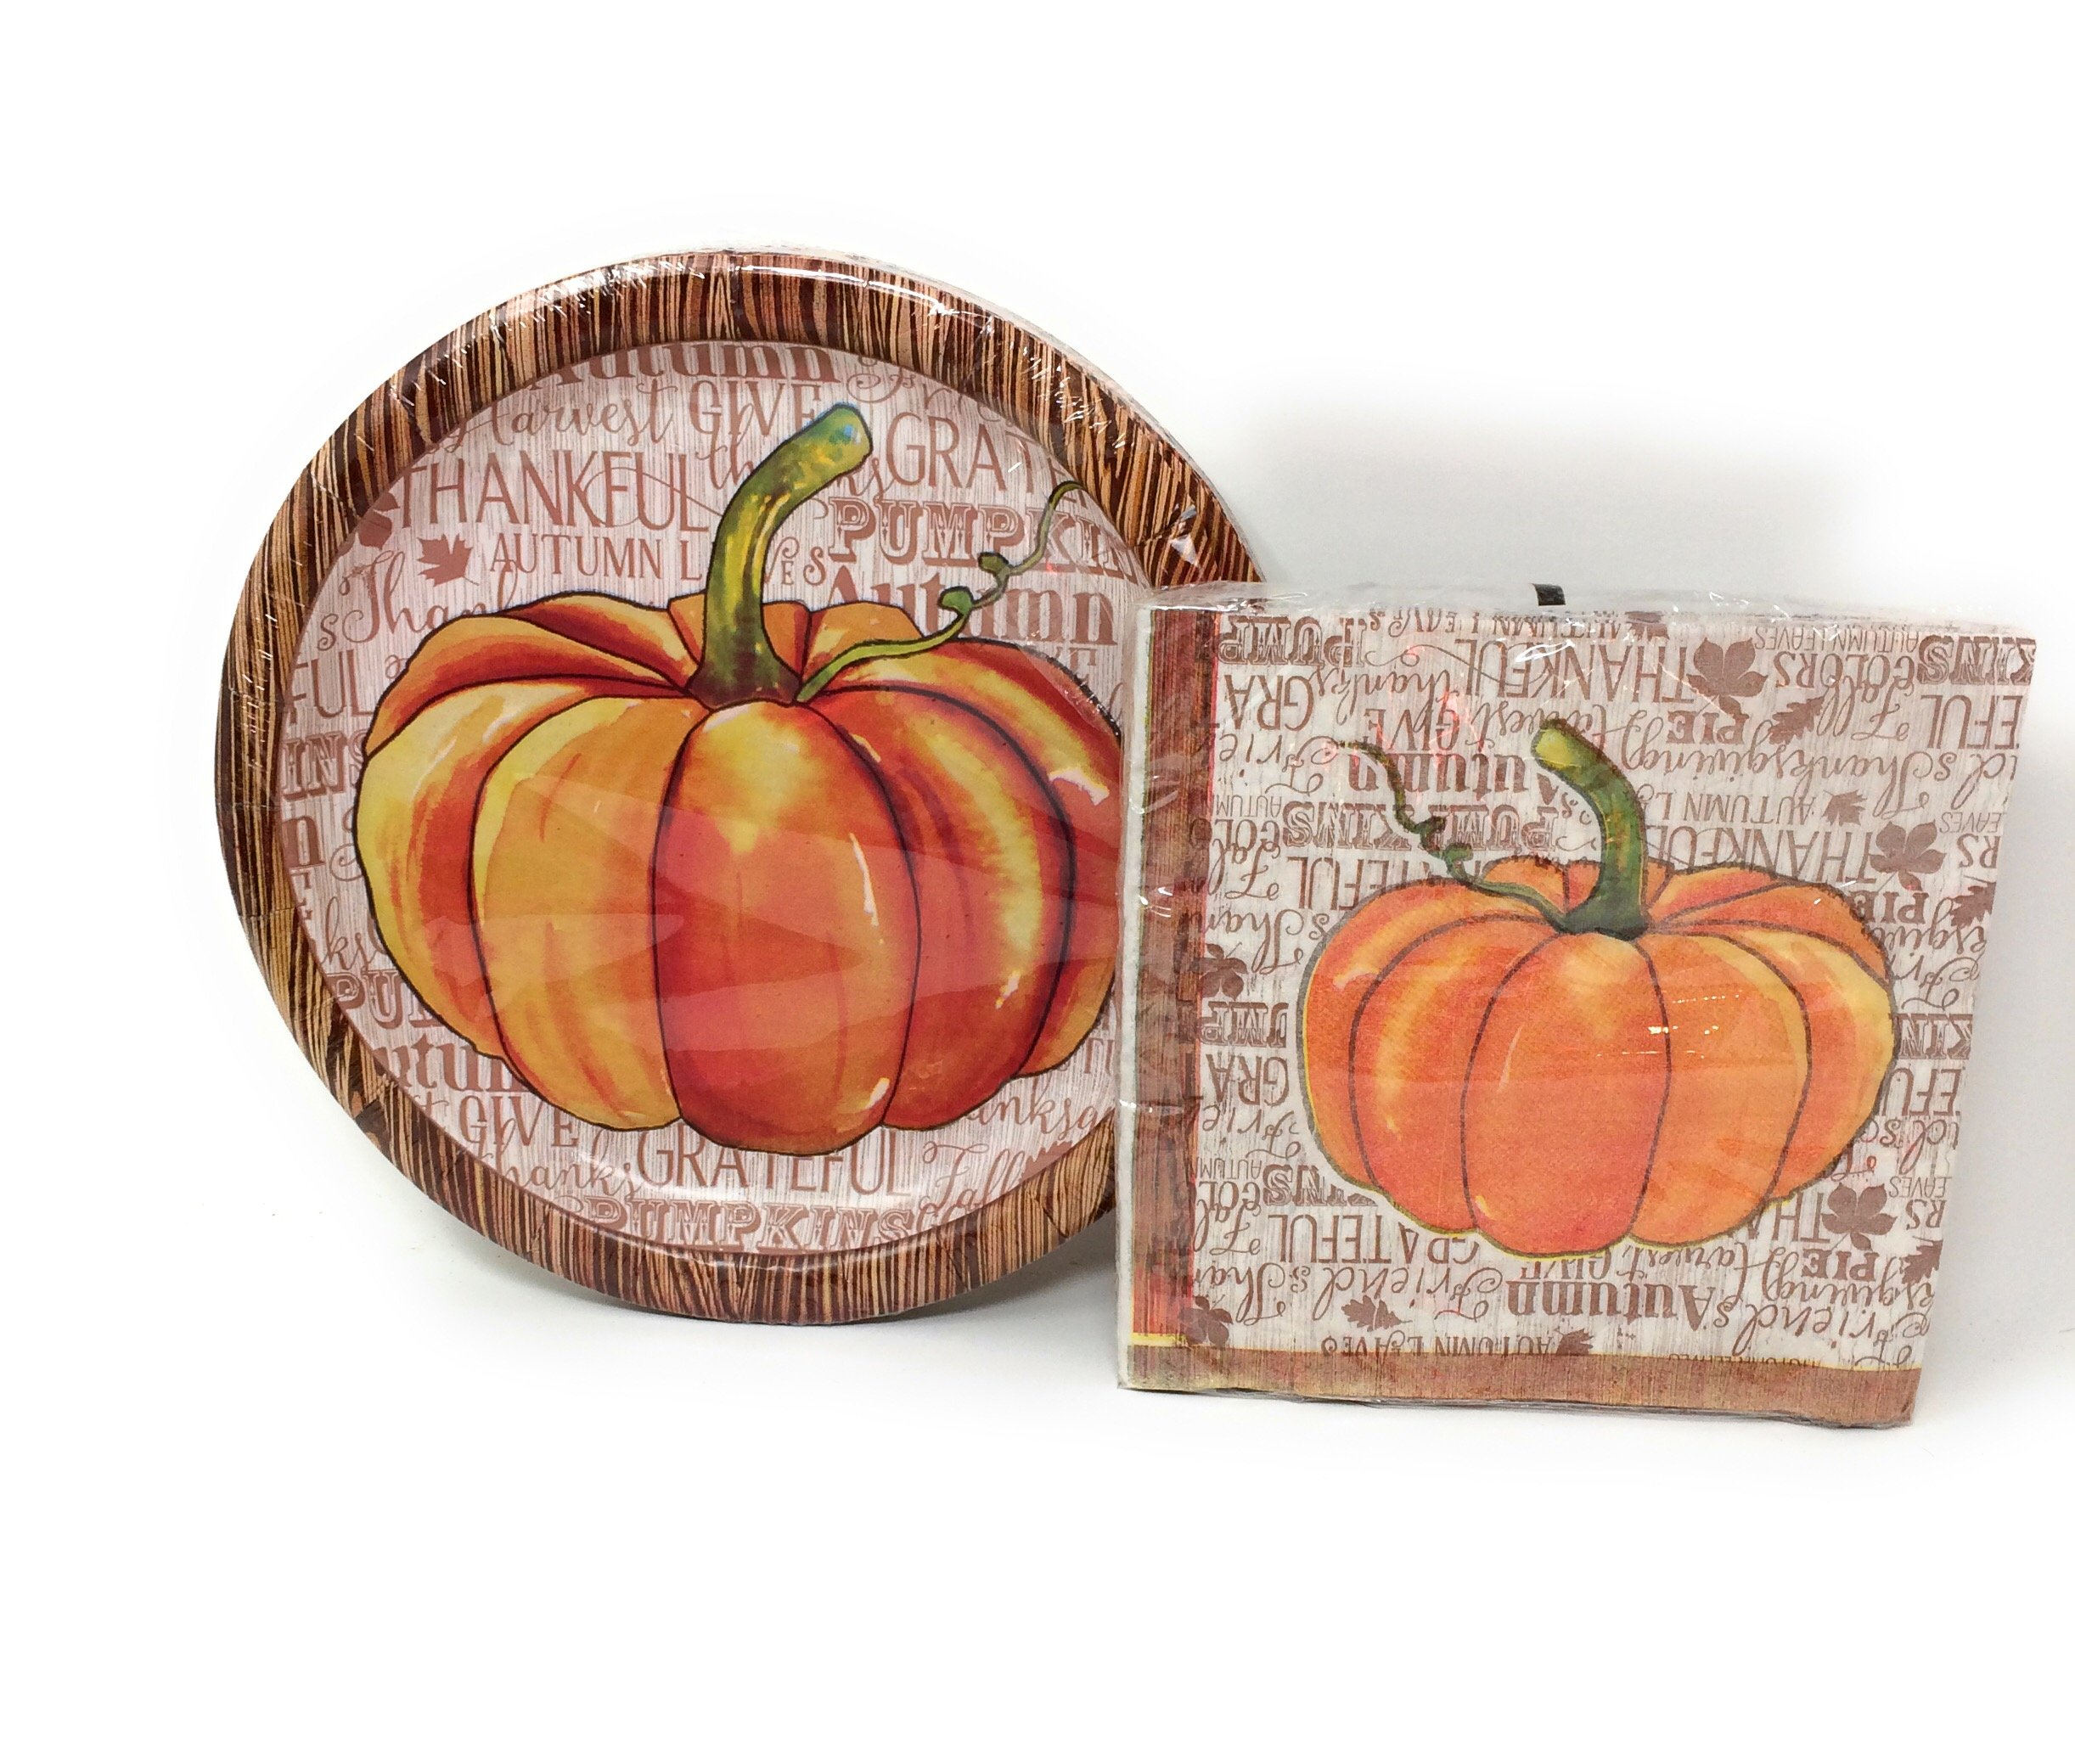 Autumn Harvest Thanksgiving (Pumpkin) Decorative Paper Plates and Napkin Set  sc 1 st  eBay & Autumn Harvest Thanksgiving (Pumpkin) Decorative Paper Plates and ...